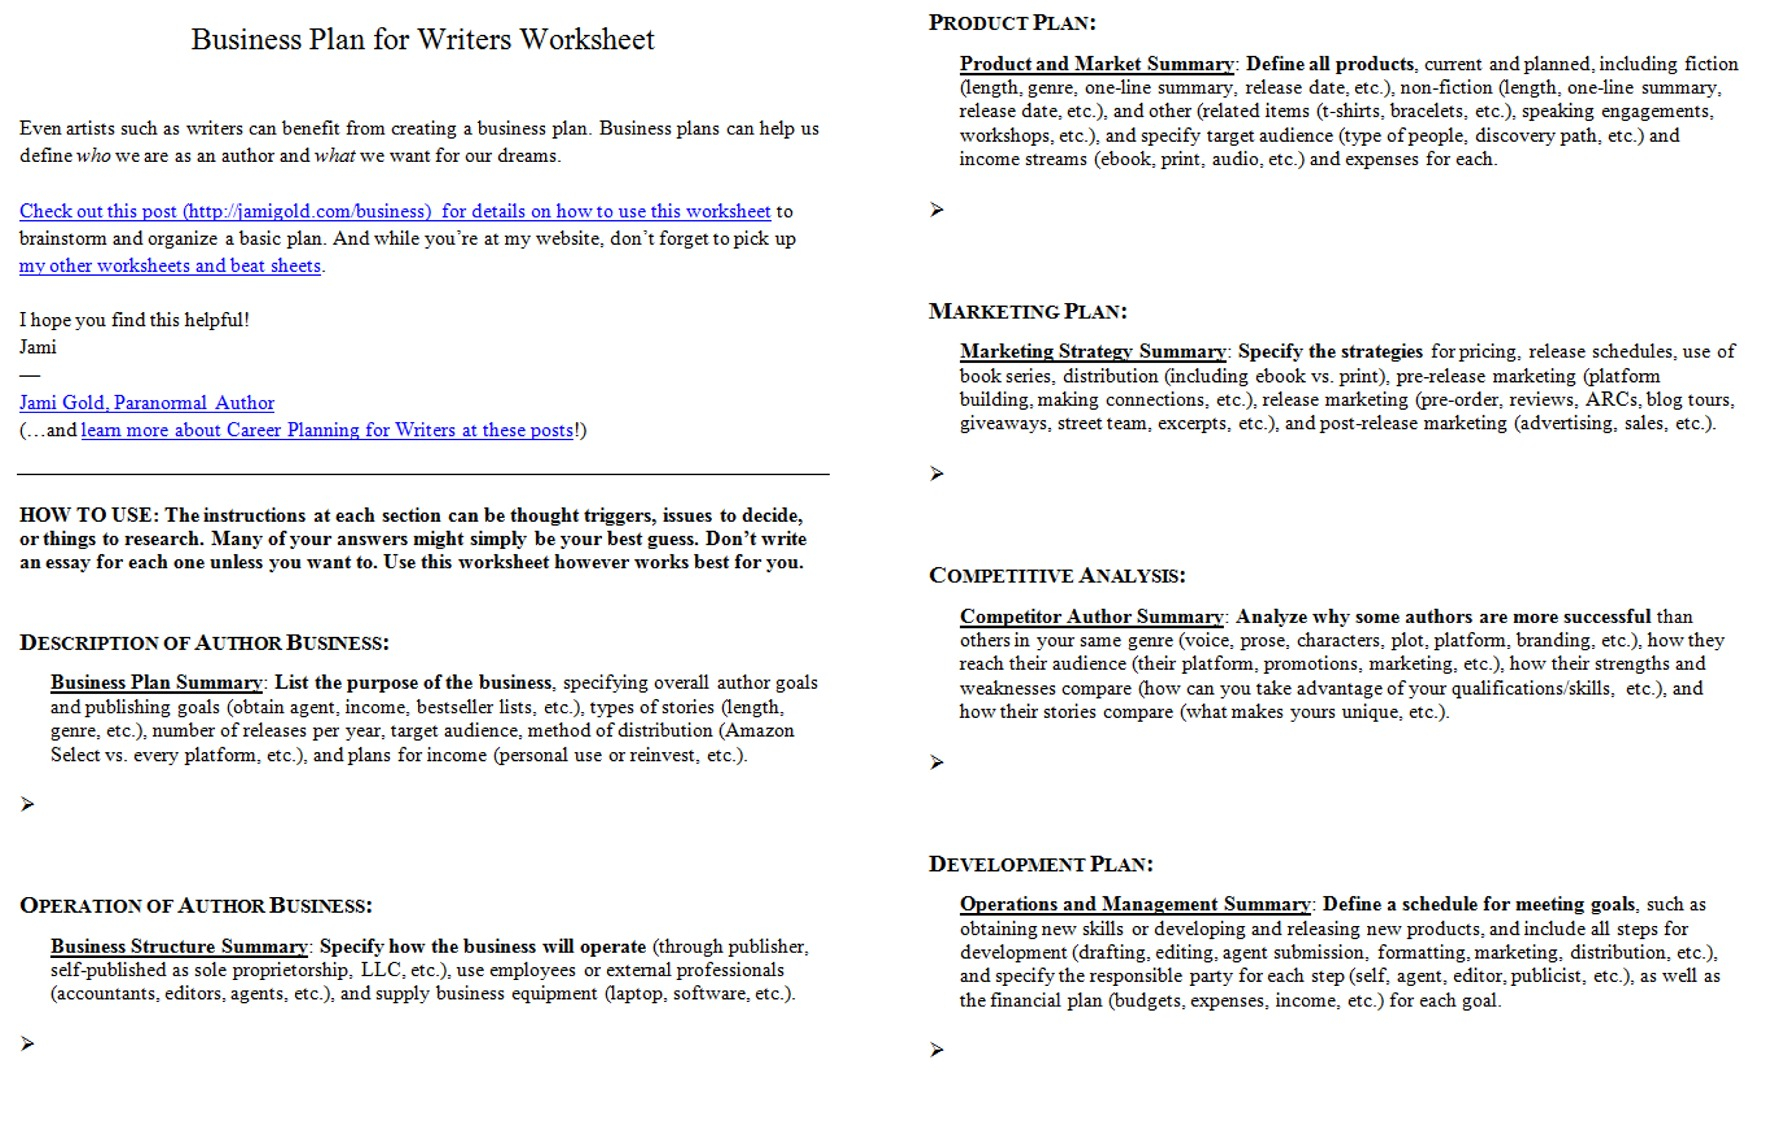 Aldiablosus  Wonderful Worksheets For Writers  Jami Gold Paranormal Author With Excellent Screen Shot Of Both Pages Of The Business Plan For Writers Worksheet With Charming Yr  Maths Worksheets Also Free Math Worksheets For Preschool In Addition Worksheet On Verbs For Grade  And  Senses Worksheets For Kids As Well As Kinds Of Pronouns Worksheets Additionally Children In Need Worksheets From Jamigoldcom With Aldiablosus  Excellent Worksheets For Writers  Jami Gold Paranormal Author With Charming Screen Shot Of Both Pages Of The Business Plan For Writers Worksheet And Wonderful Yr  Maths Worksheets Also Free Math Worksheets For Preschool In Addition Worksheet On Verbs For Grade  From Jamigoldcom